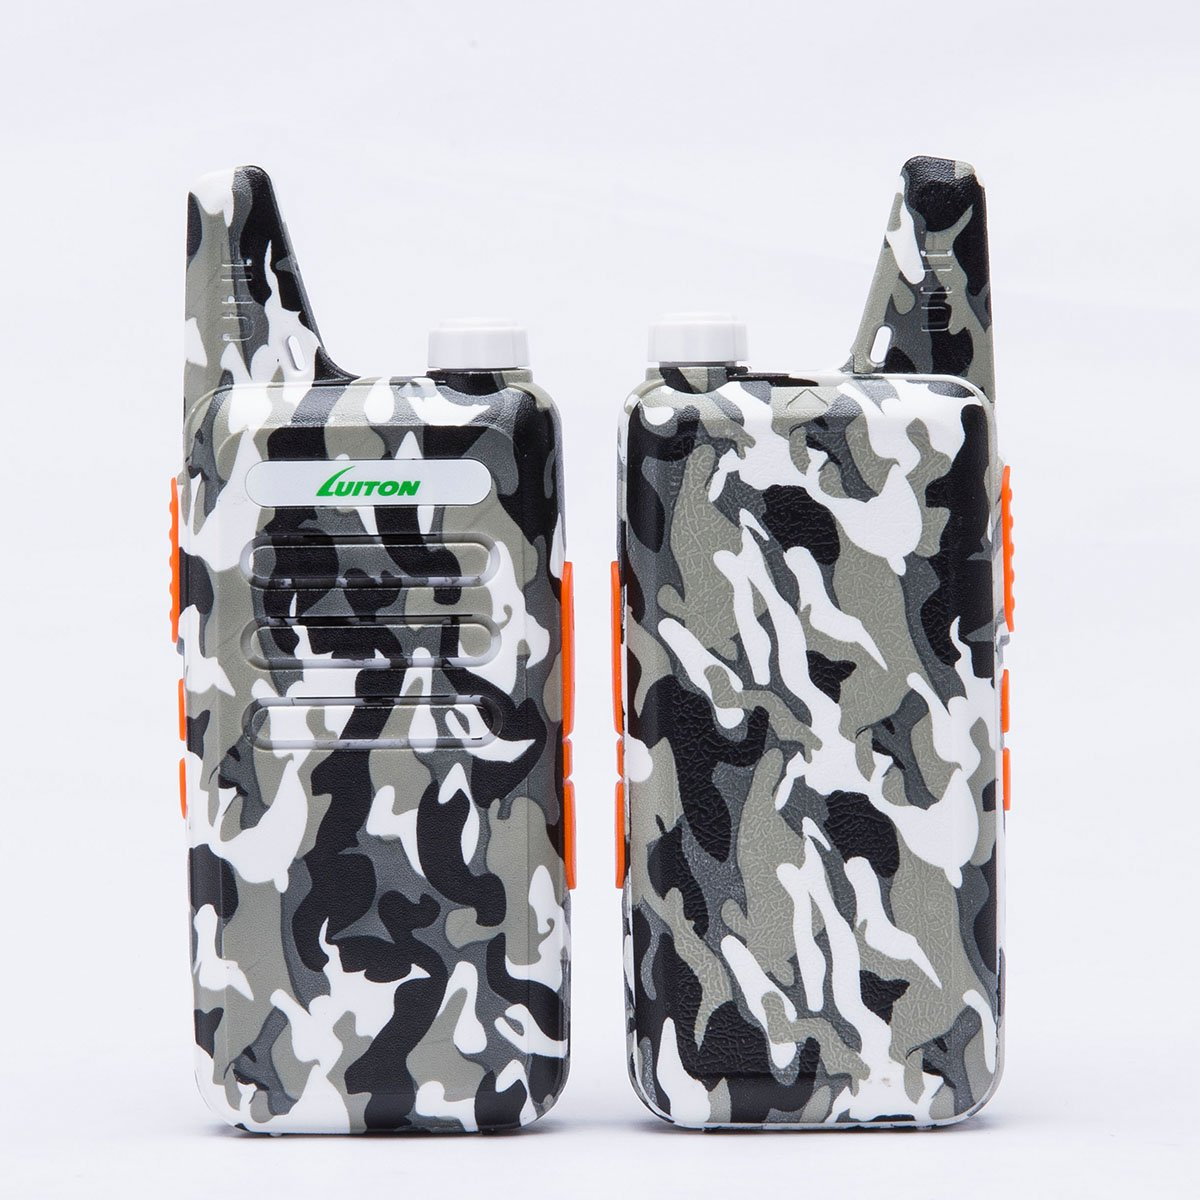 2 Way Radio Walkie Talkies Long Range for Outdoor Camping Hiking Hunting Activities LT-316 Military Camo Mini Uhf Rechargeable Two-Way Radio 5-10 Miles Back to School Ideal Gifts by LUITON (2 Pack) by LUITON (Image #2)